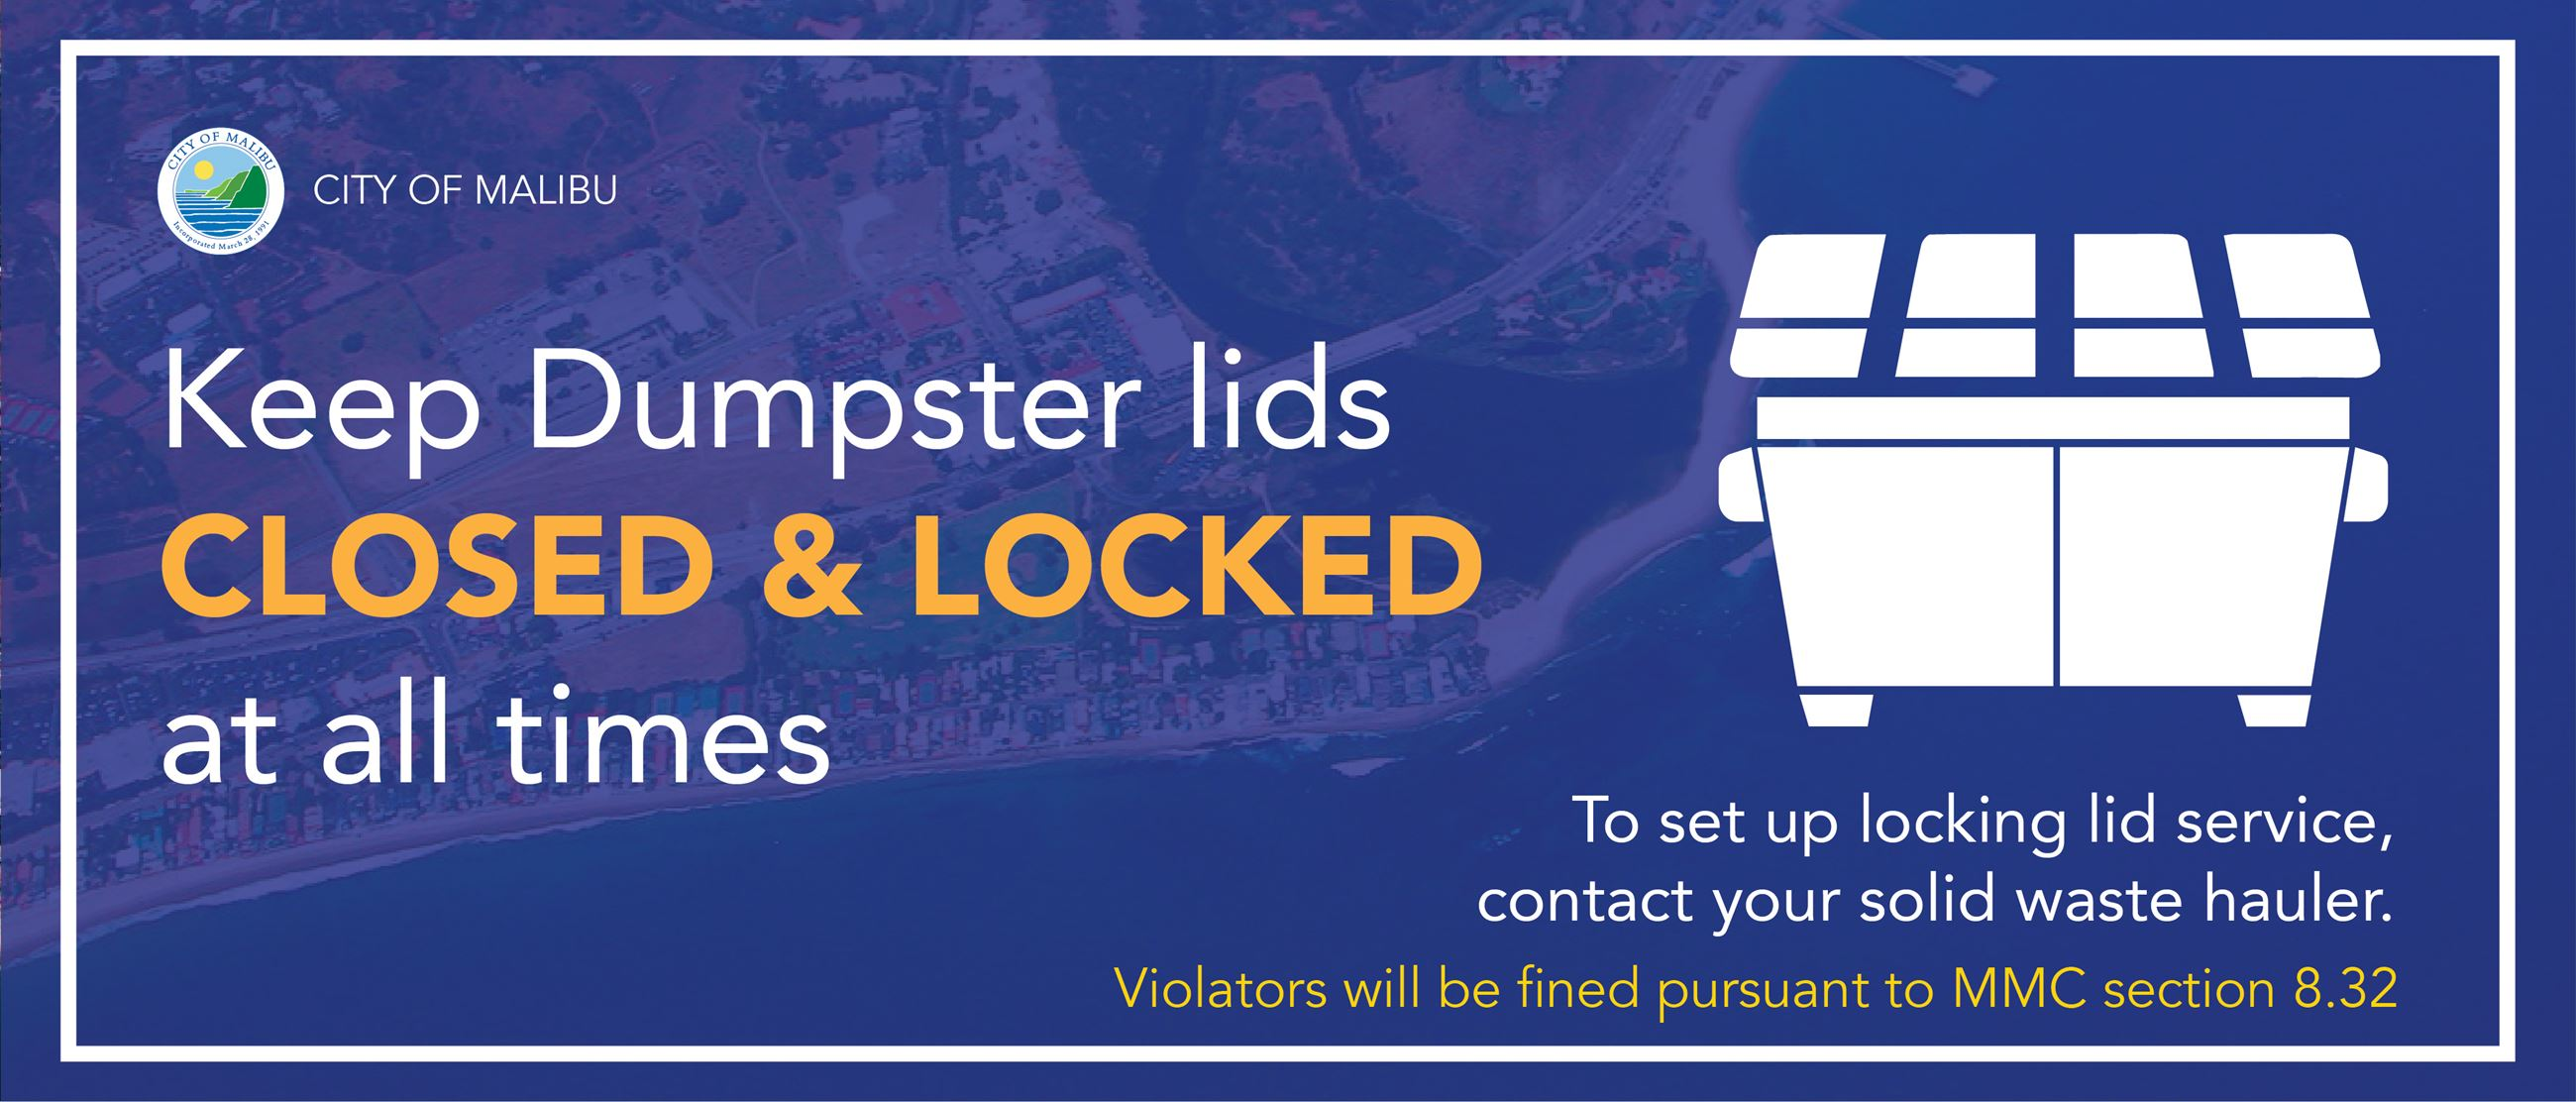 Locking Dumpsters Required